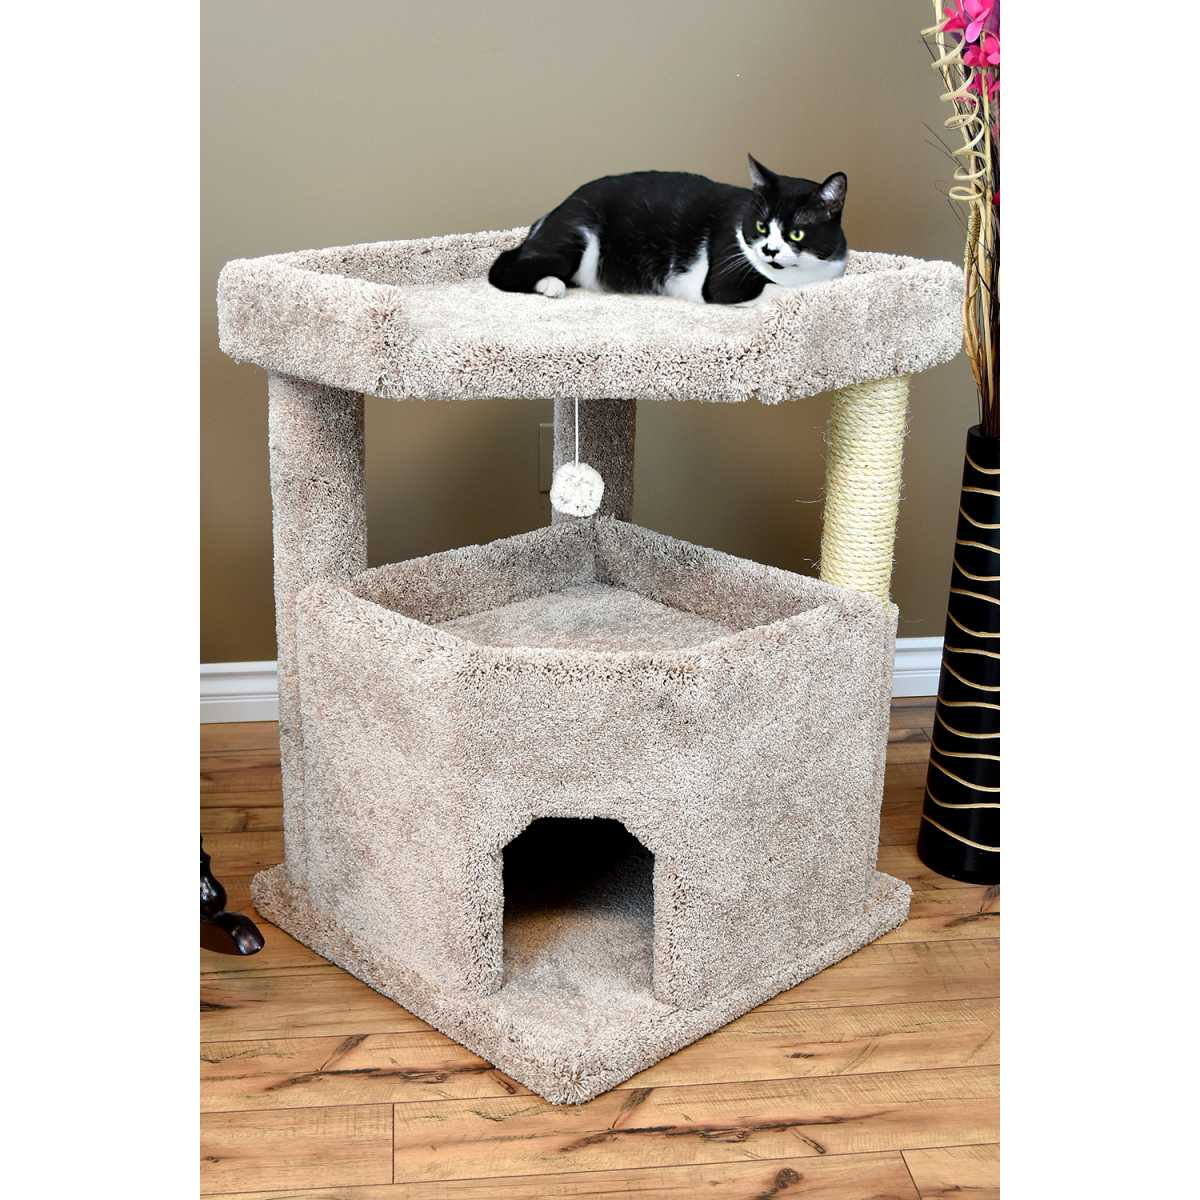 Cat S Choice Extra Large Corner Condo Palace With Loft 130051 Catsplay Superstore